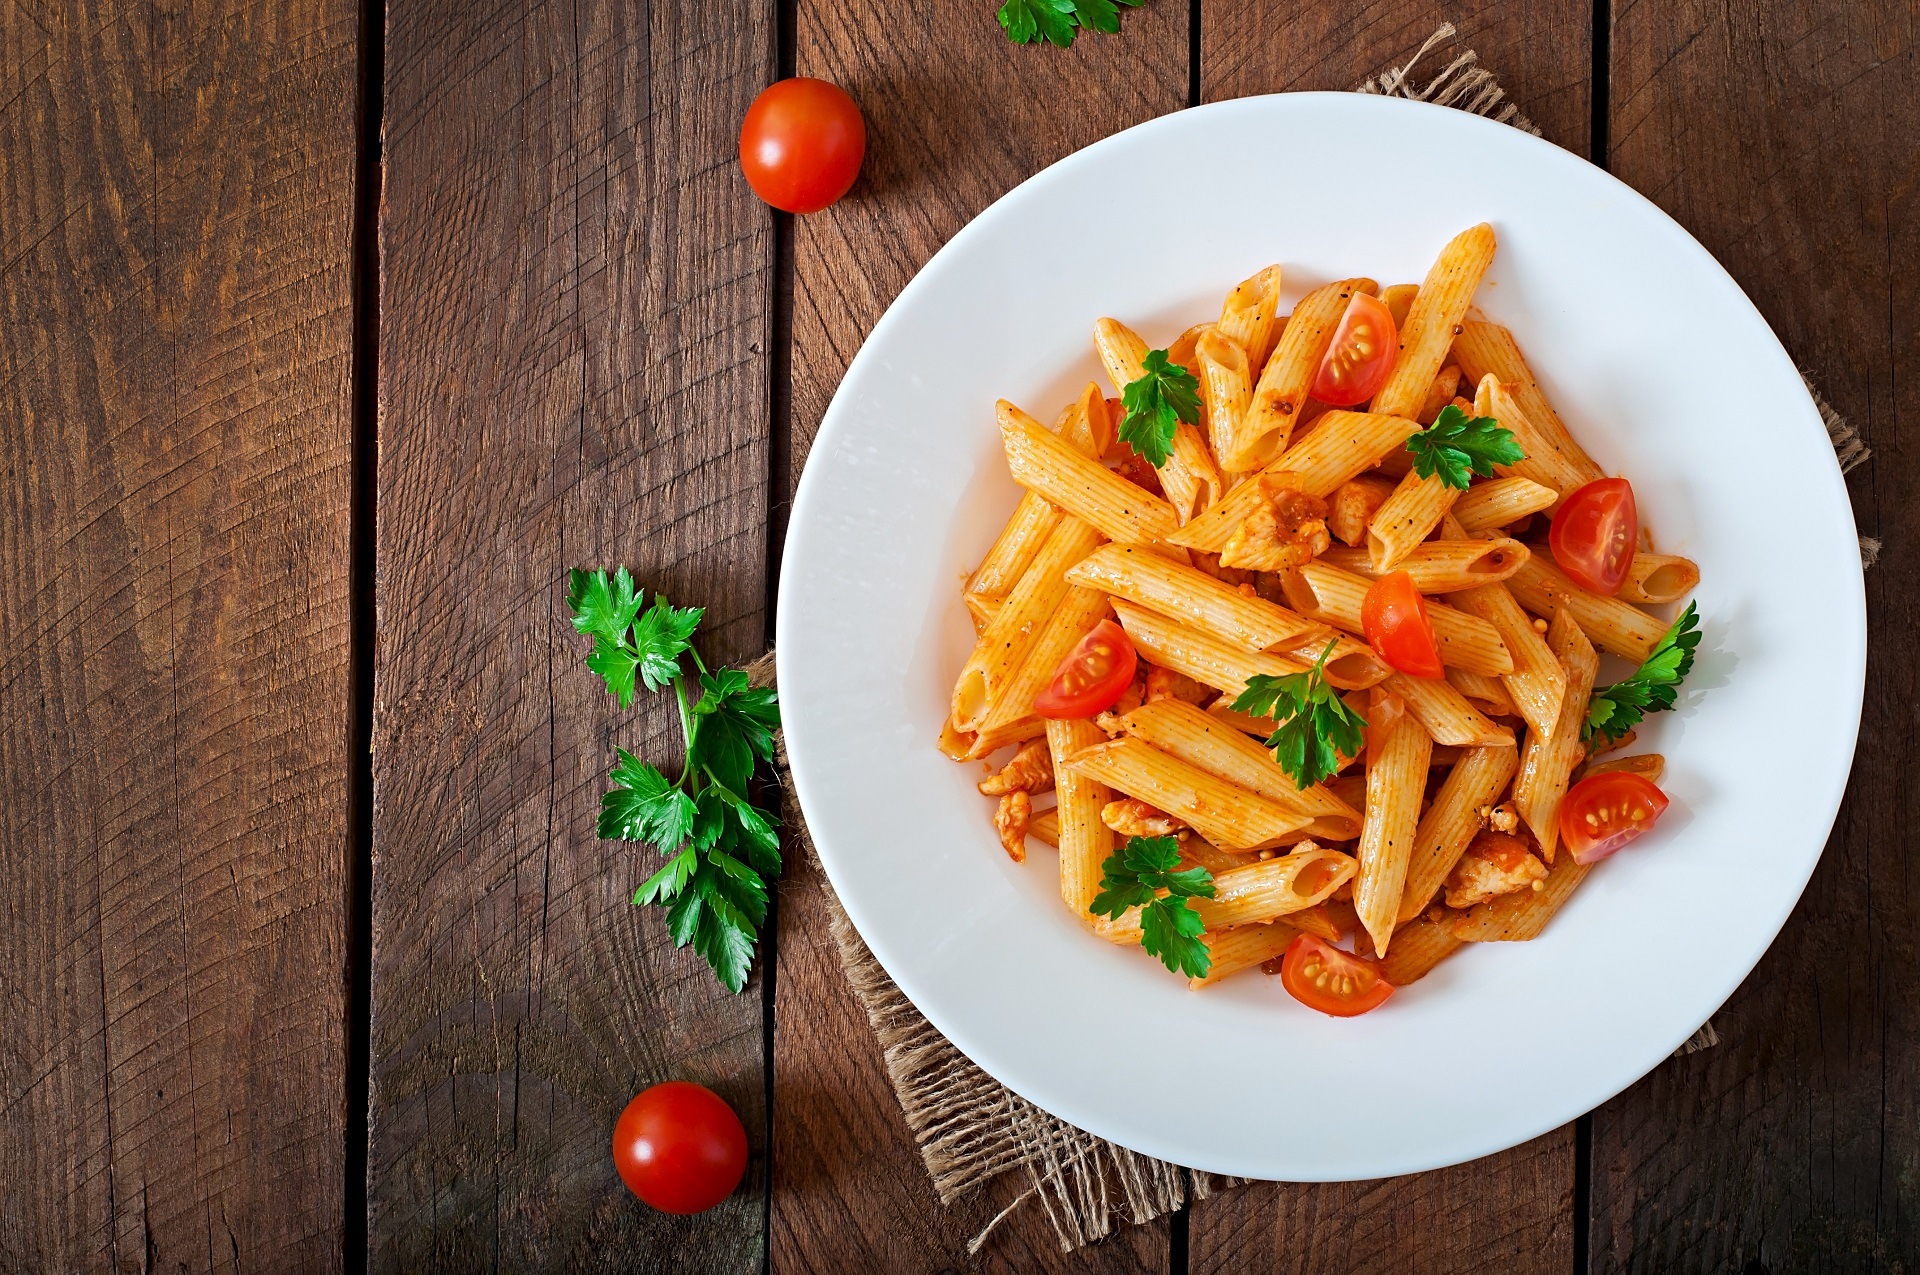 Penne is a type of pasta.